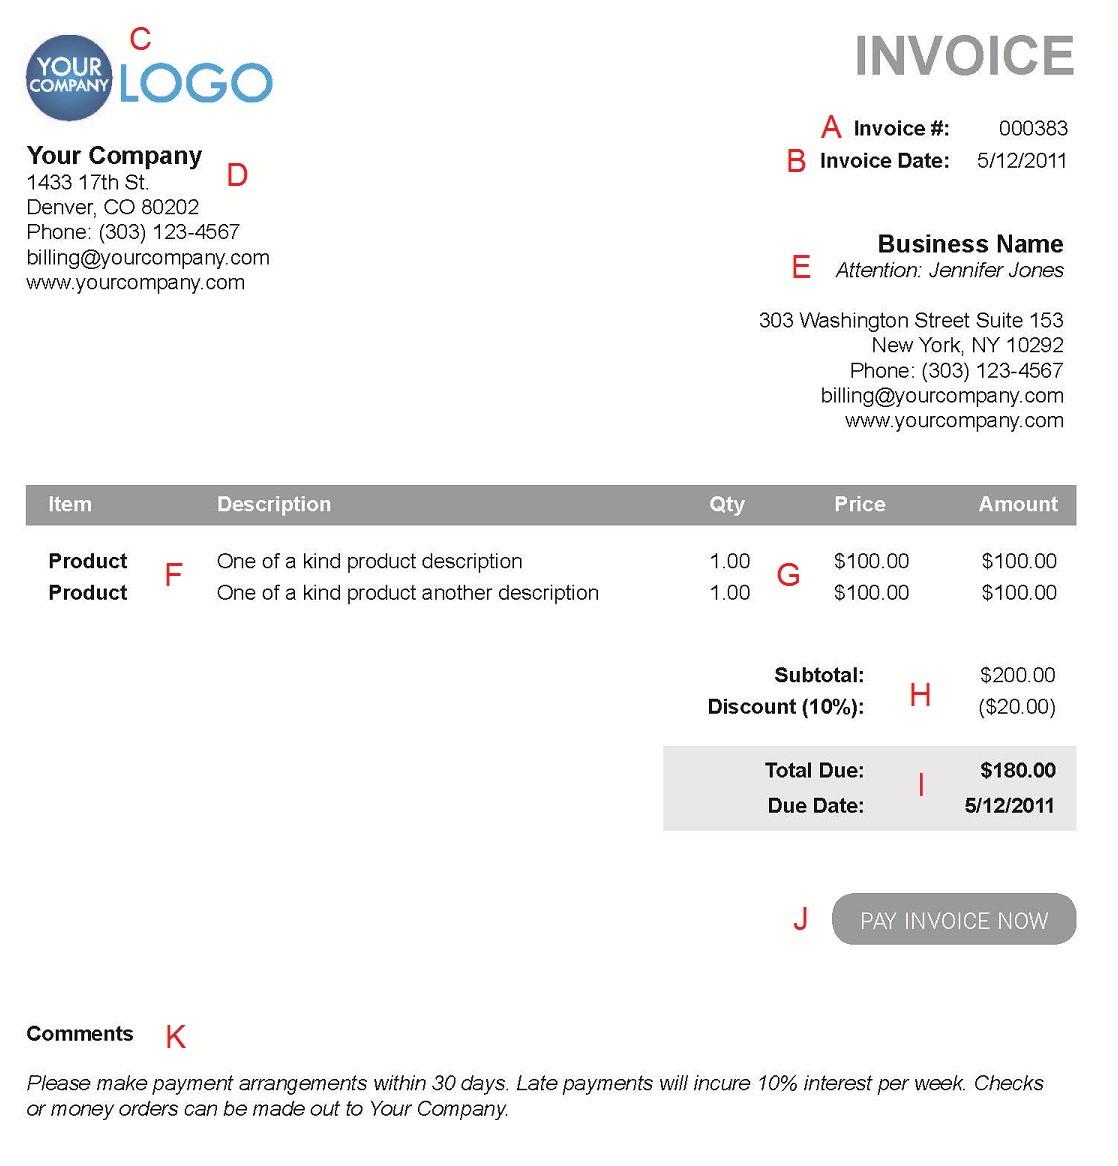 Pigbrotherus  Marvelous The  Different Sections Of An Electronic Payment Invoice With Magnificent A  With Divine Xero Invoice Api Also Invoice Mail In Addition Igf Invoice Finance And Invoice Logos As Well As Travel Invoice Format Additionally Invoice Packing Slip From Paysimplecom With Pigbrotherus  Magnificent The  Different Sections Of An Electronic Payment Invoice With Divine A  And Marvelous Xero Invoice Api Also Invoice Mail In Addition Igf Invoice Finance From Paysimplecom